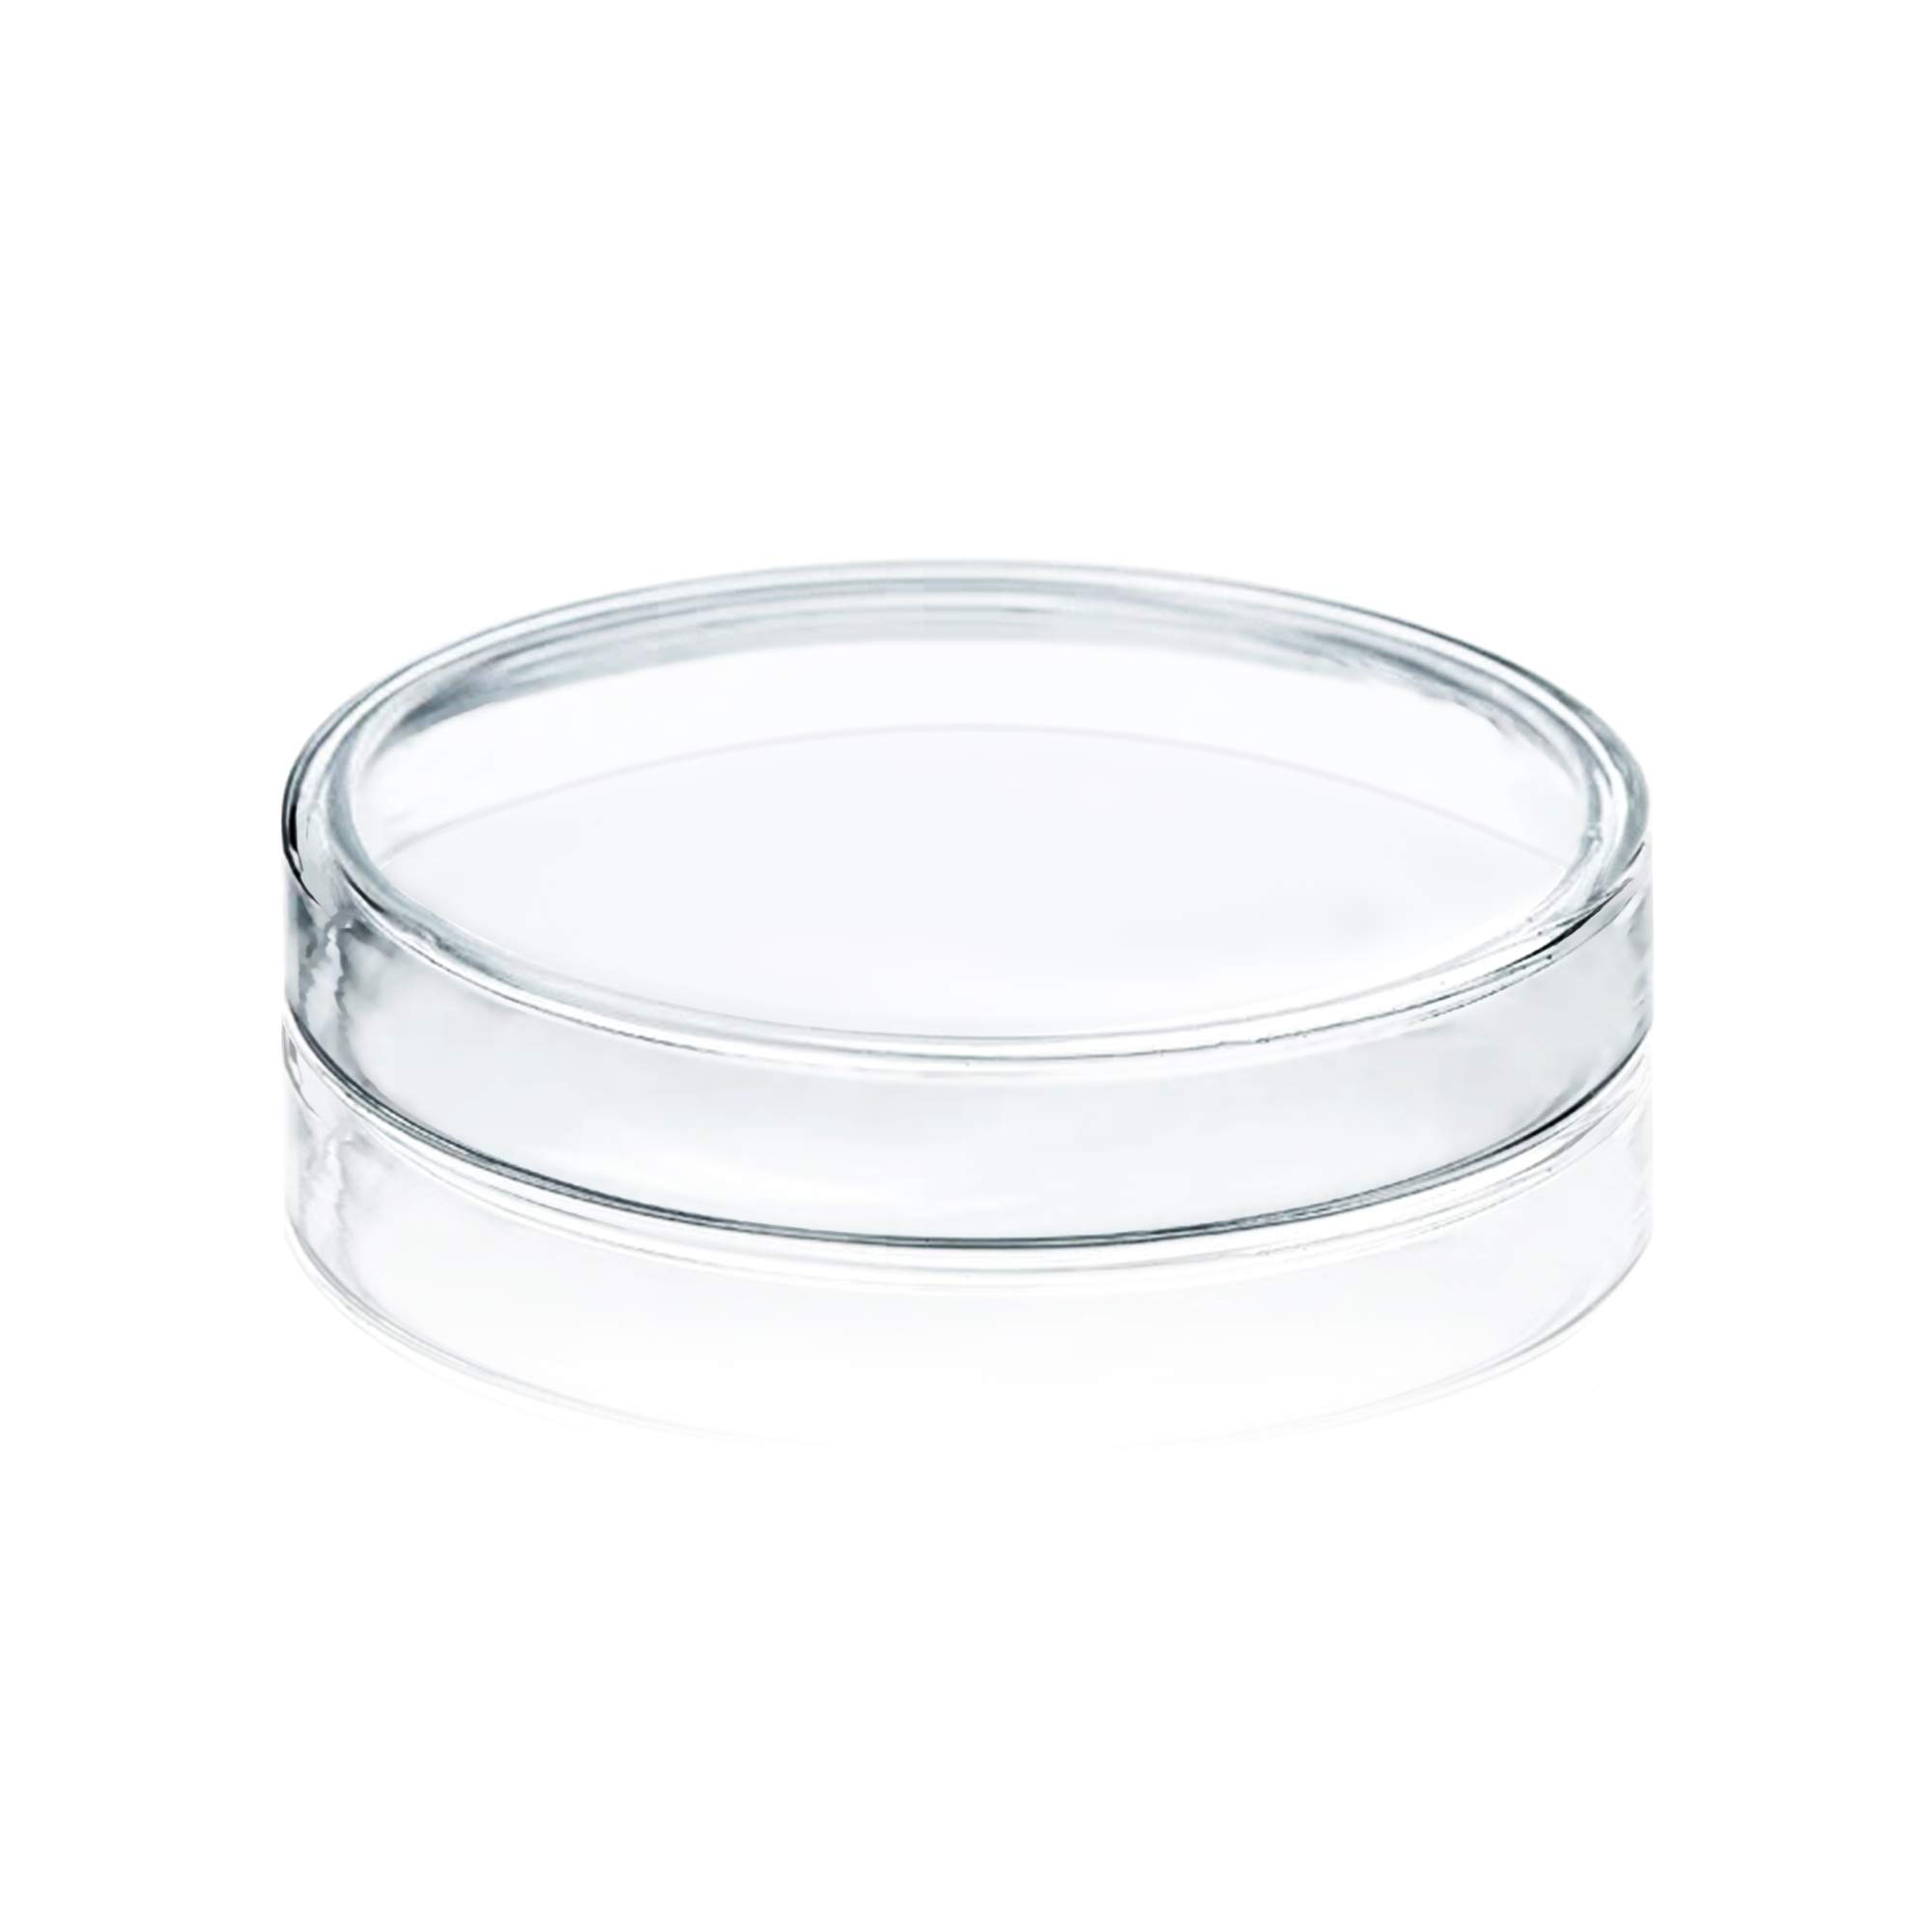 Huanyu 120mm 5pcs High Borosilicate Glass Petri Dishes with Lids Bacterial Culture Dishes (5pcs:120mm) by Huanyu